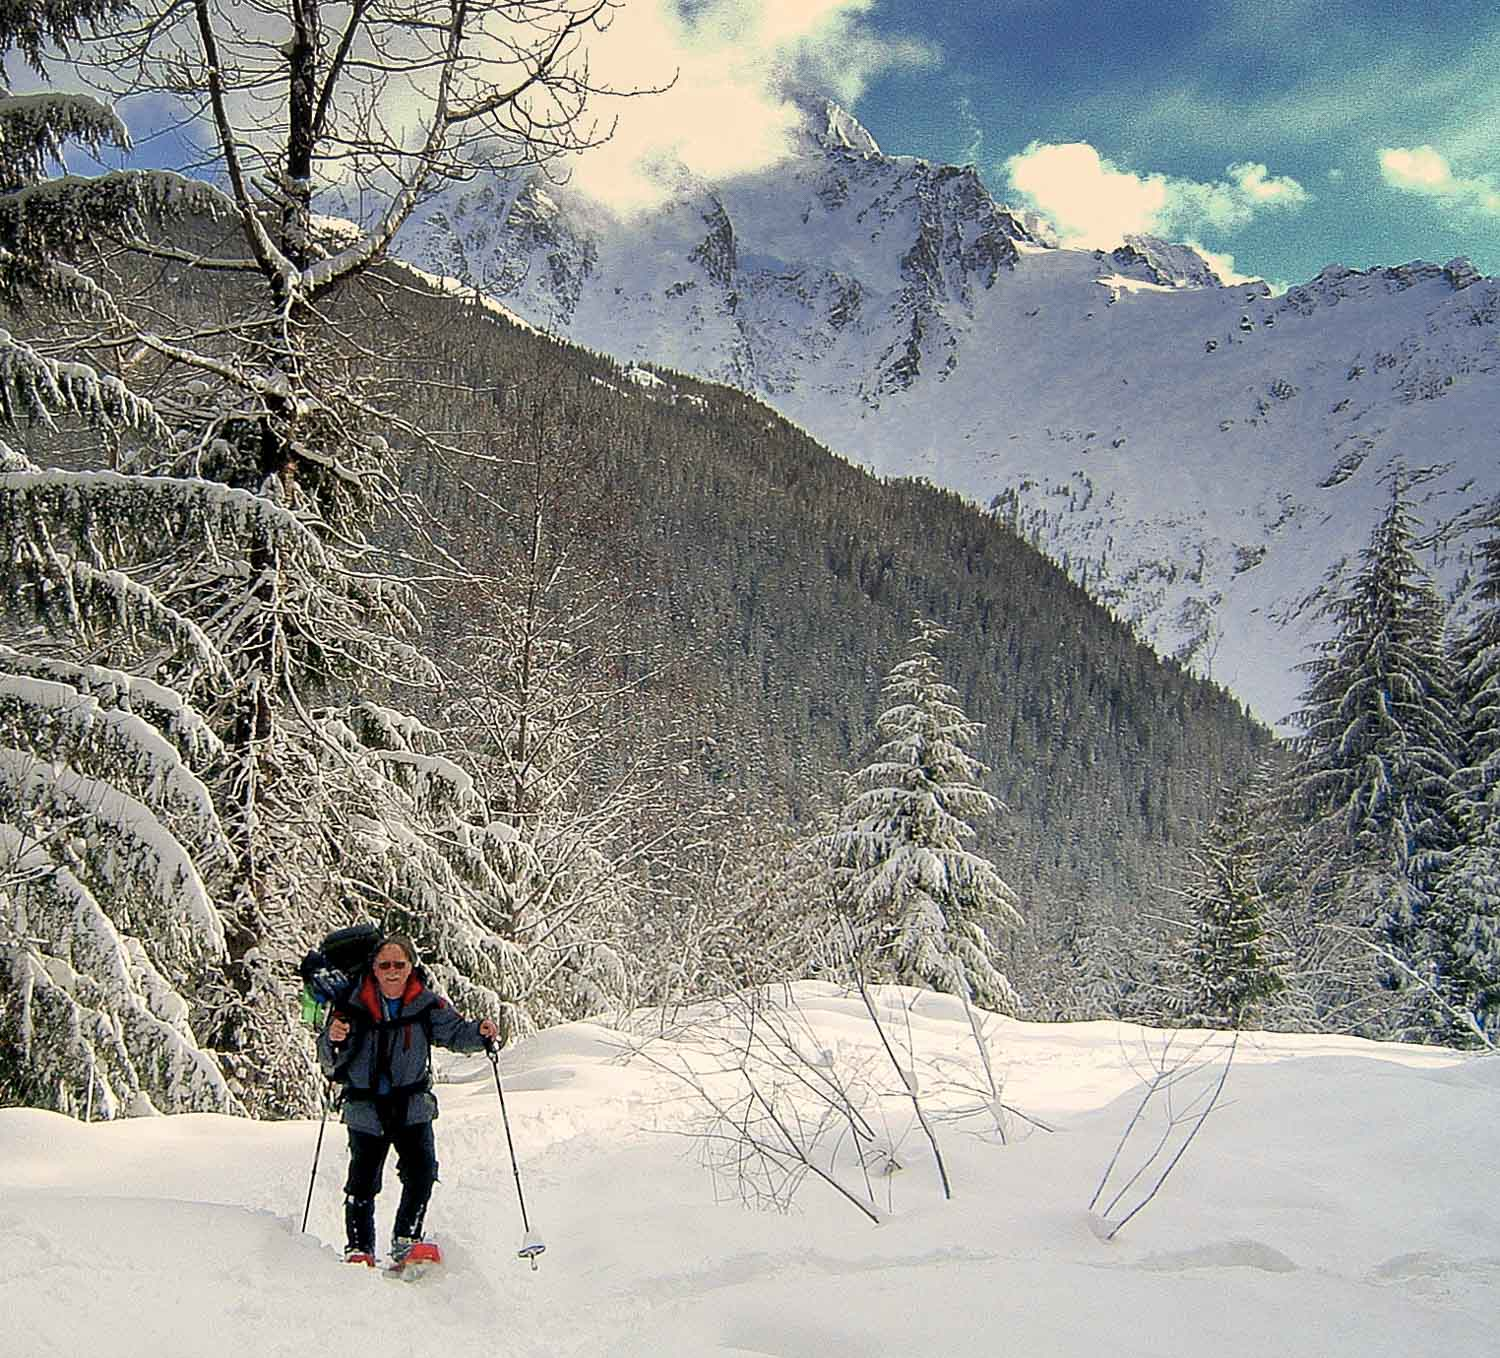 Relatively Winter Wonders for Those Who Wander: Snowshoe Trails along the Mt  TO85